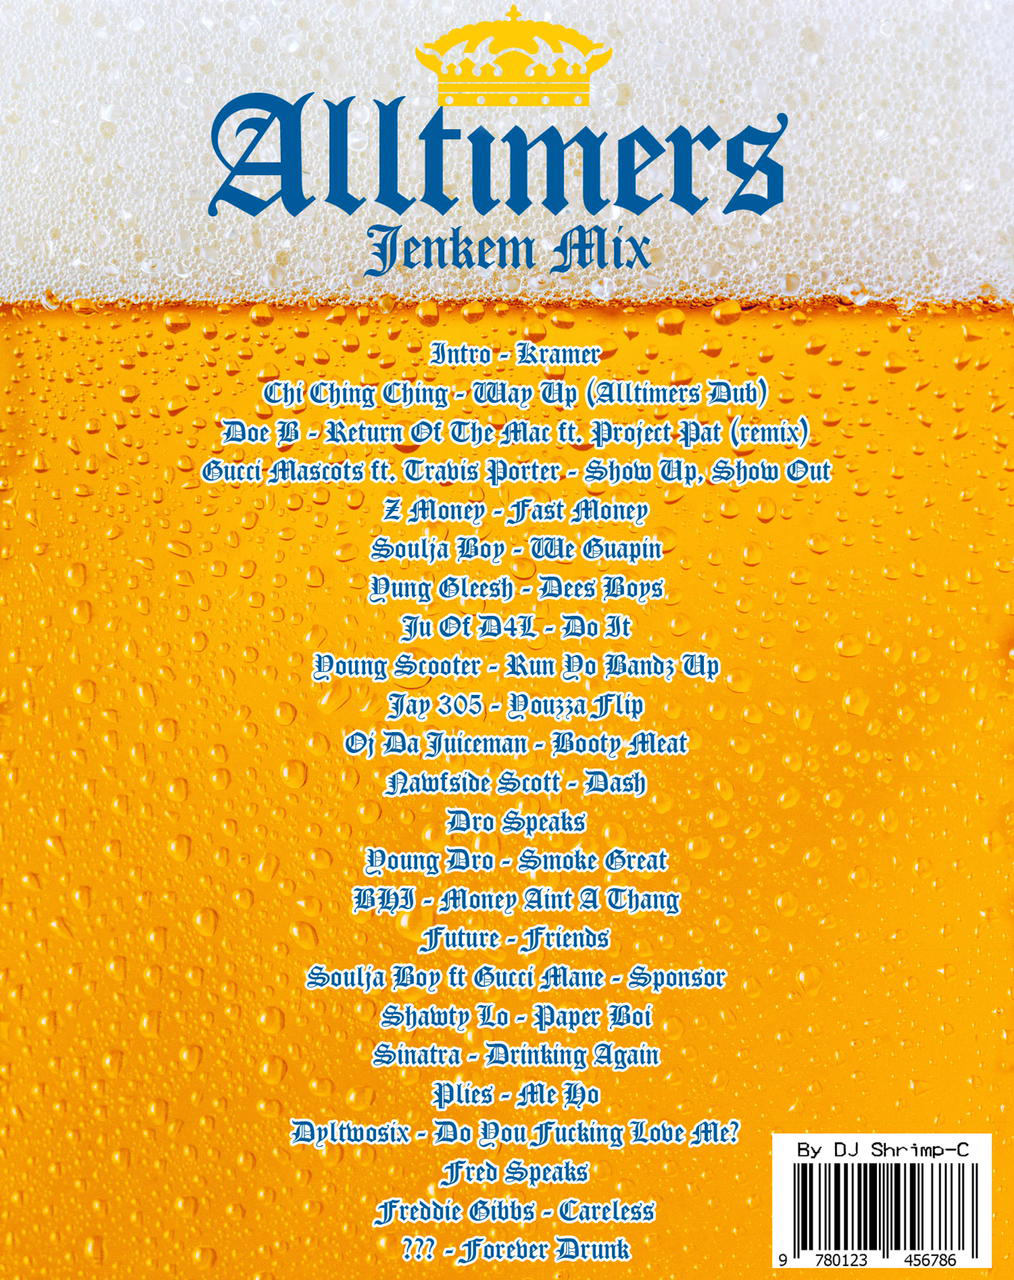 alltimers_jenkem_mix_tracklist_all_timers